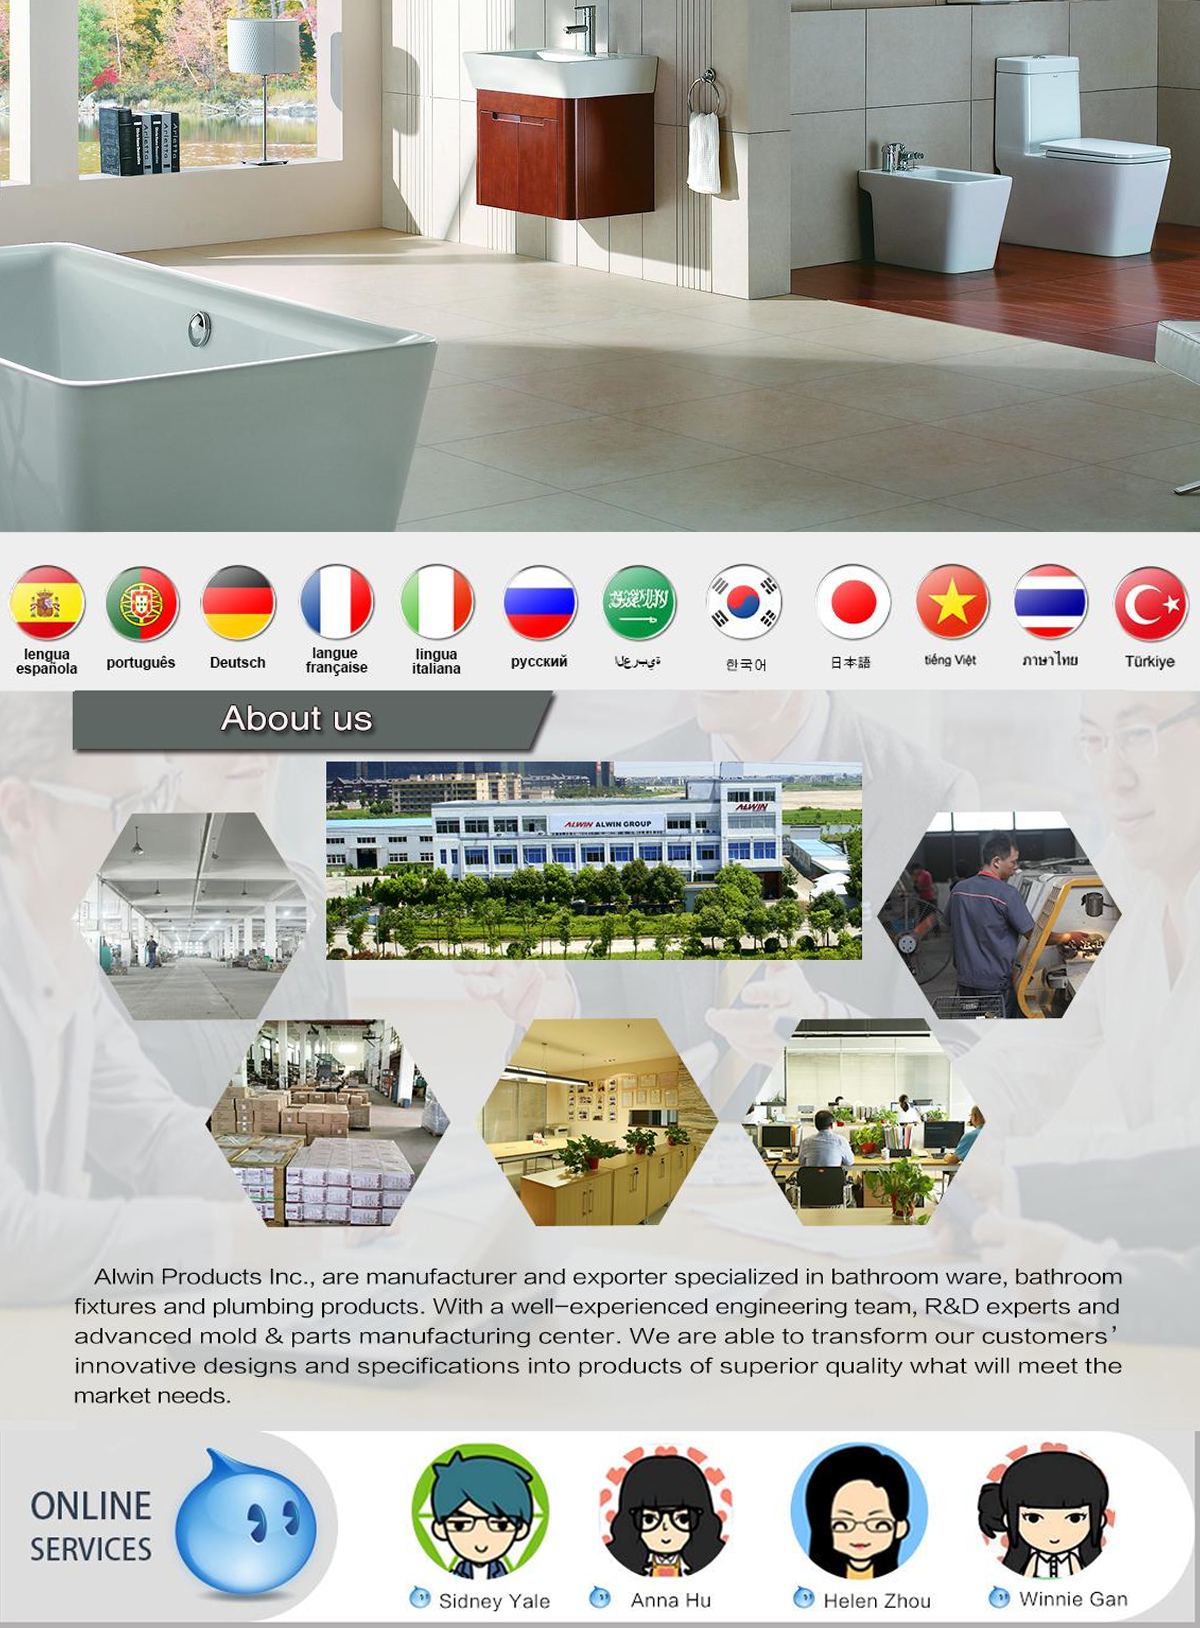 Alwin (Ningbo) Products Inc. - Bathroom accessories, bathroom mat